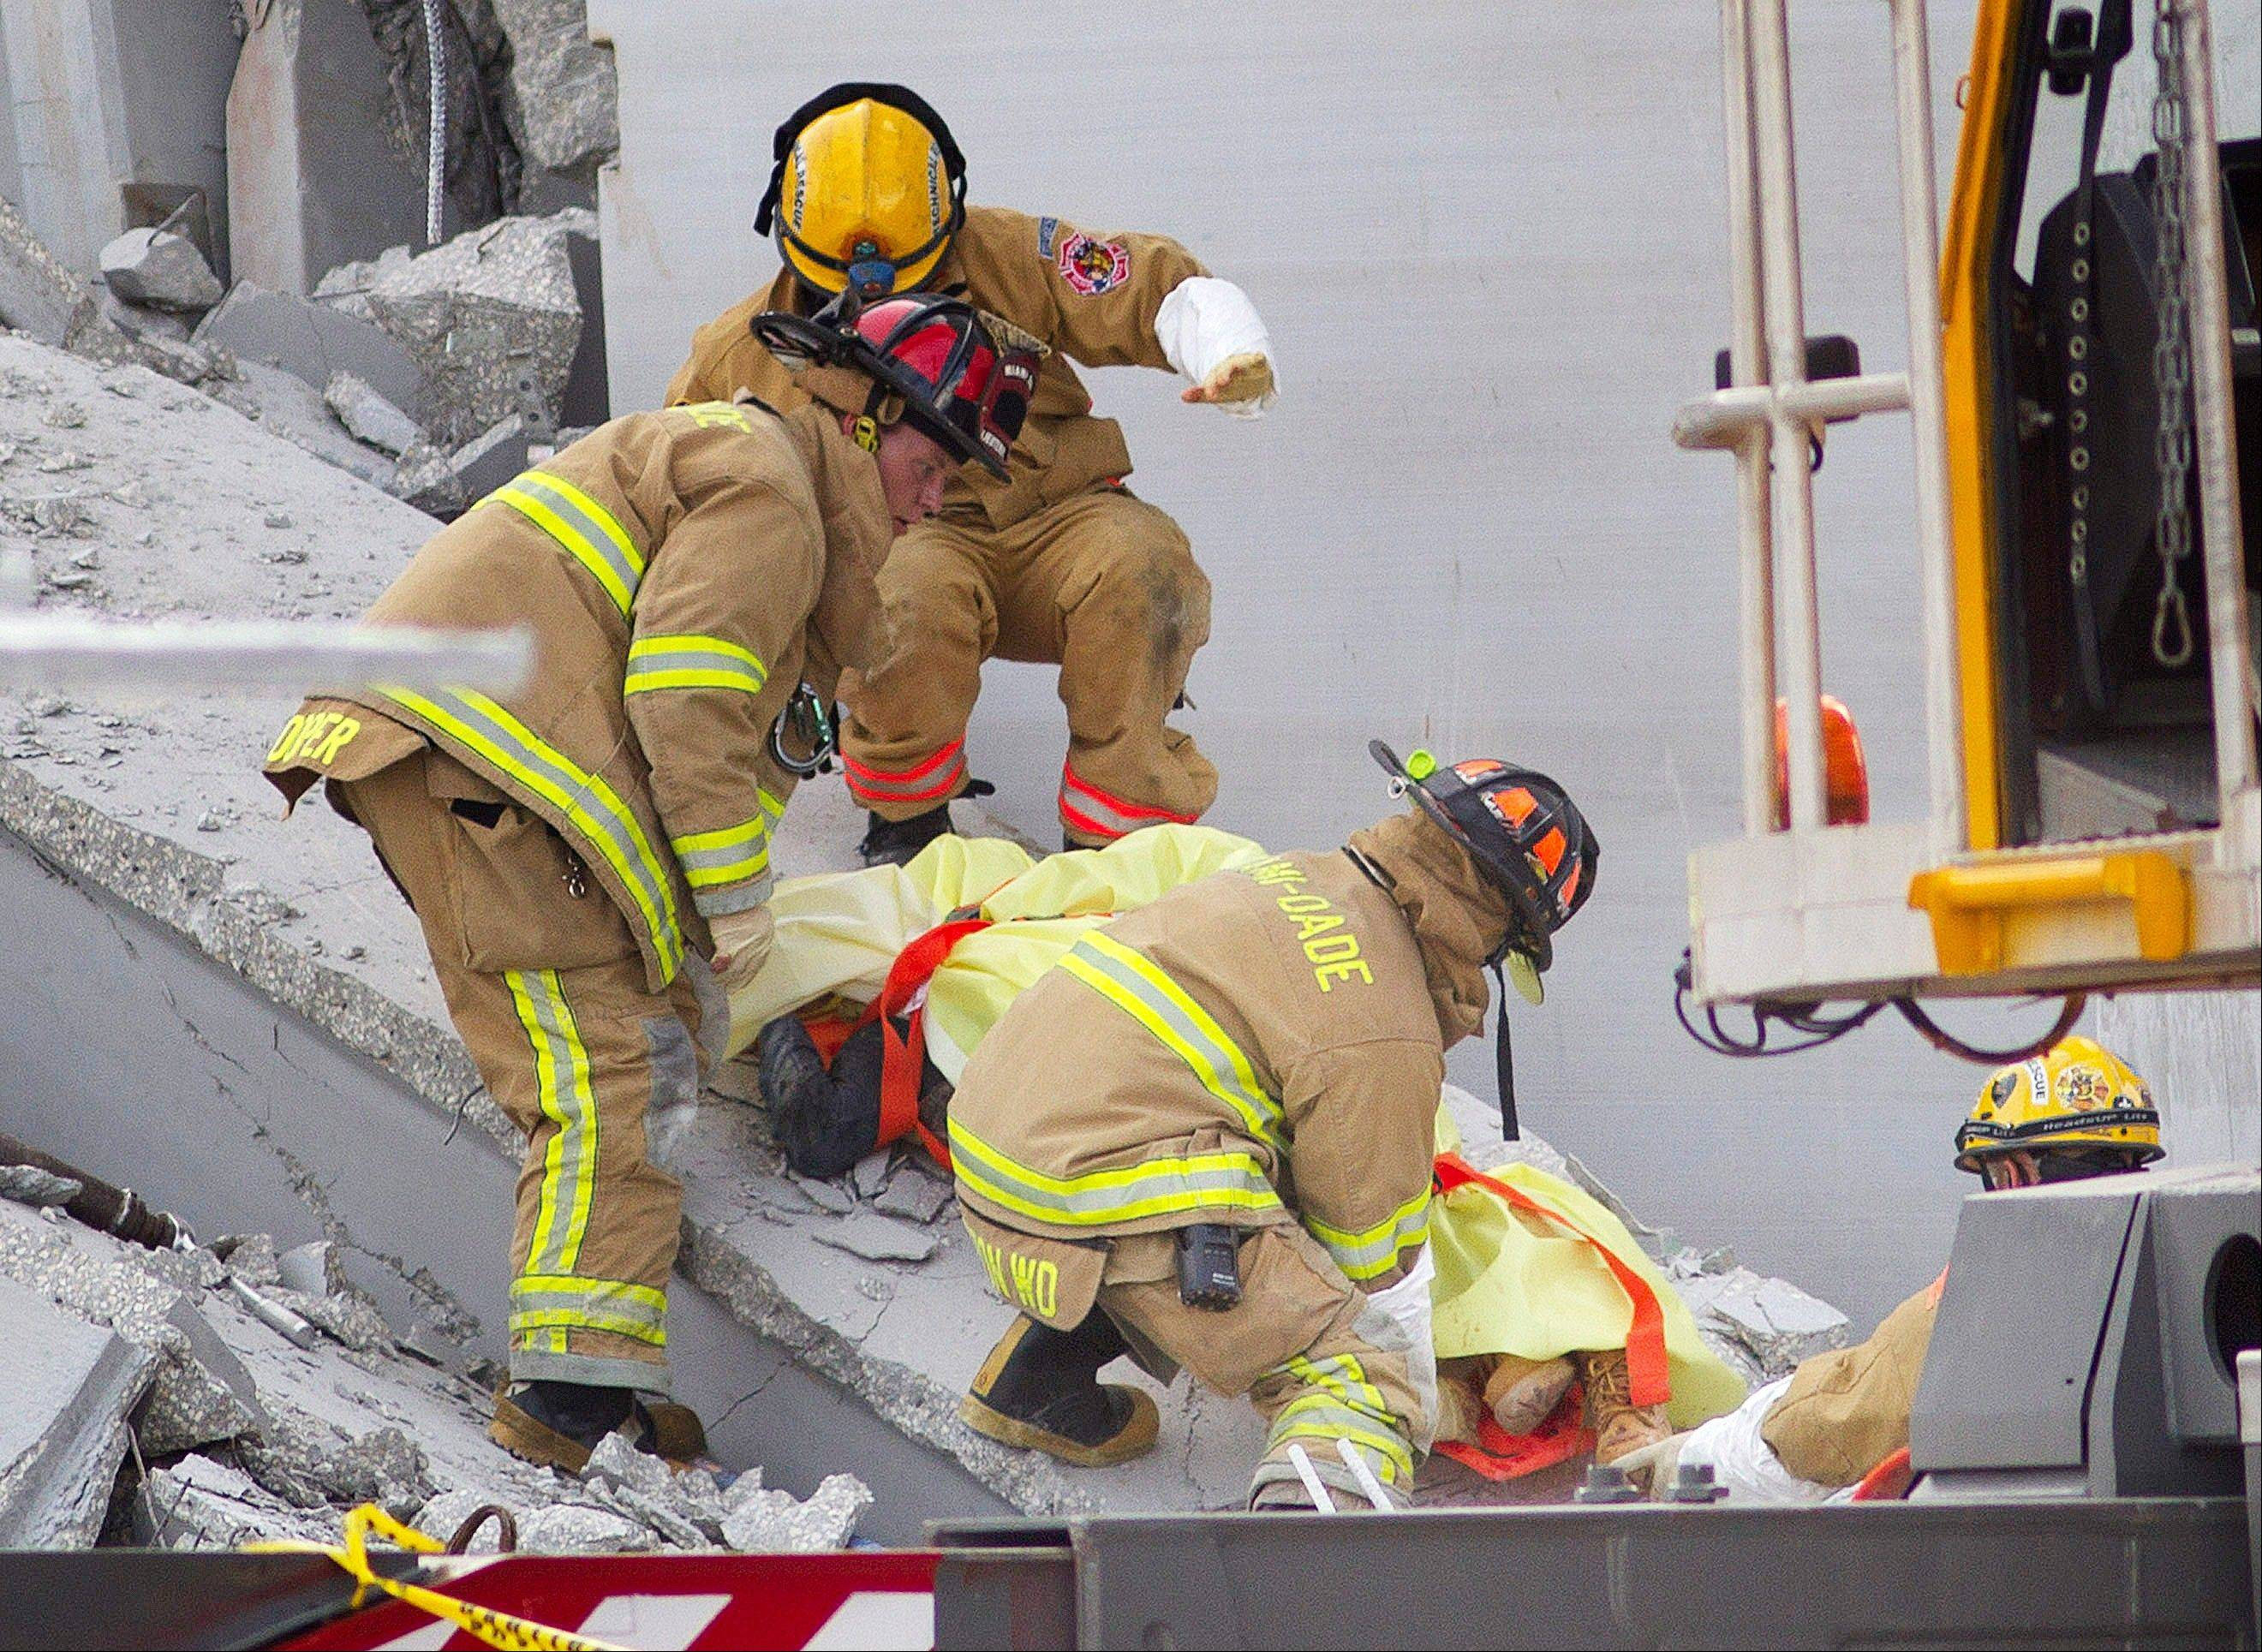 Fire Rescue officials work to remove a victim from the collapsed parking garage at the Miami Dade College West campus in Doral, Fla. Tuesday, Oct. 10, 2012. A section of a parking garage under construction at a community college collapsed killing three people.